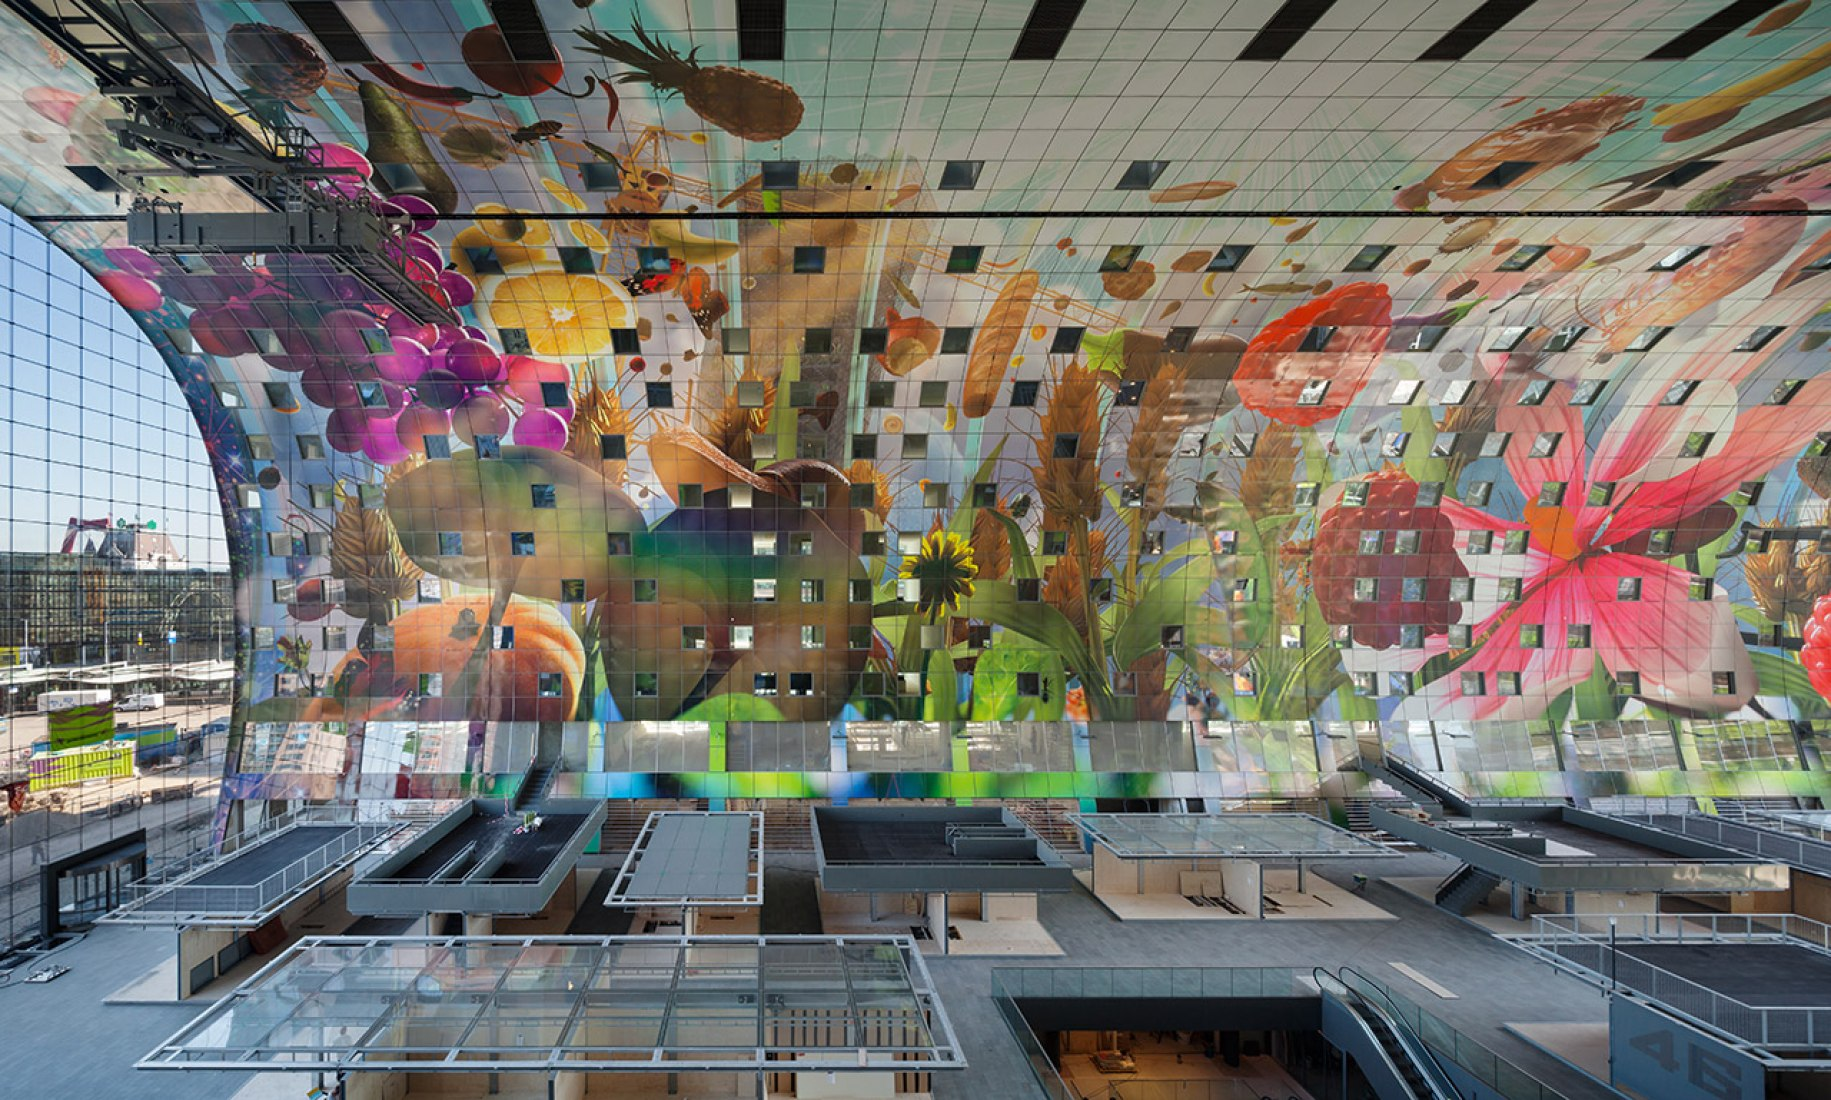 An 11000 sqm mural on the inside by artist Arno Coenen using Pixar technology. Image © Daria Scagliola+Stijn Brakkee. Courtesy of Markthal Rotterdam.